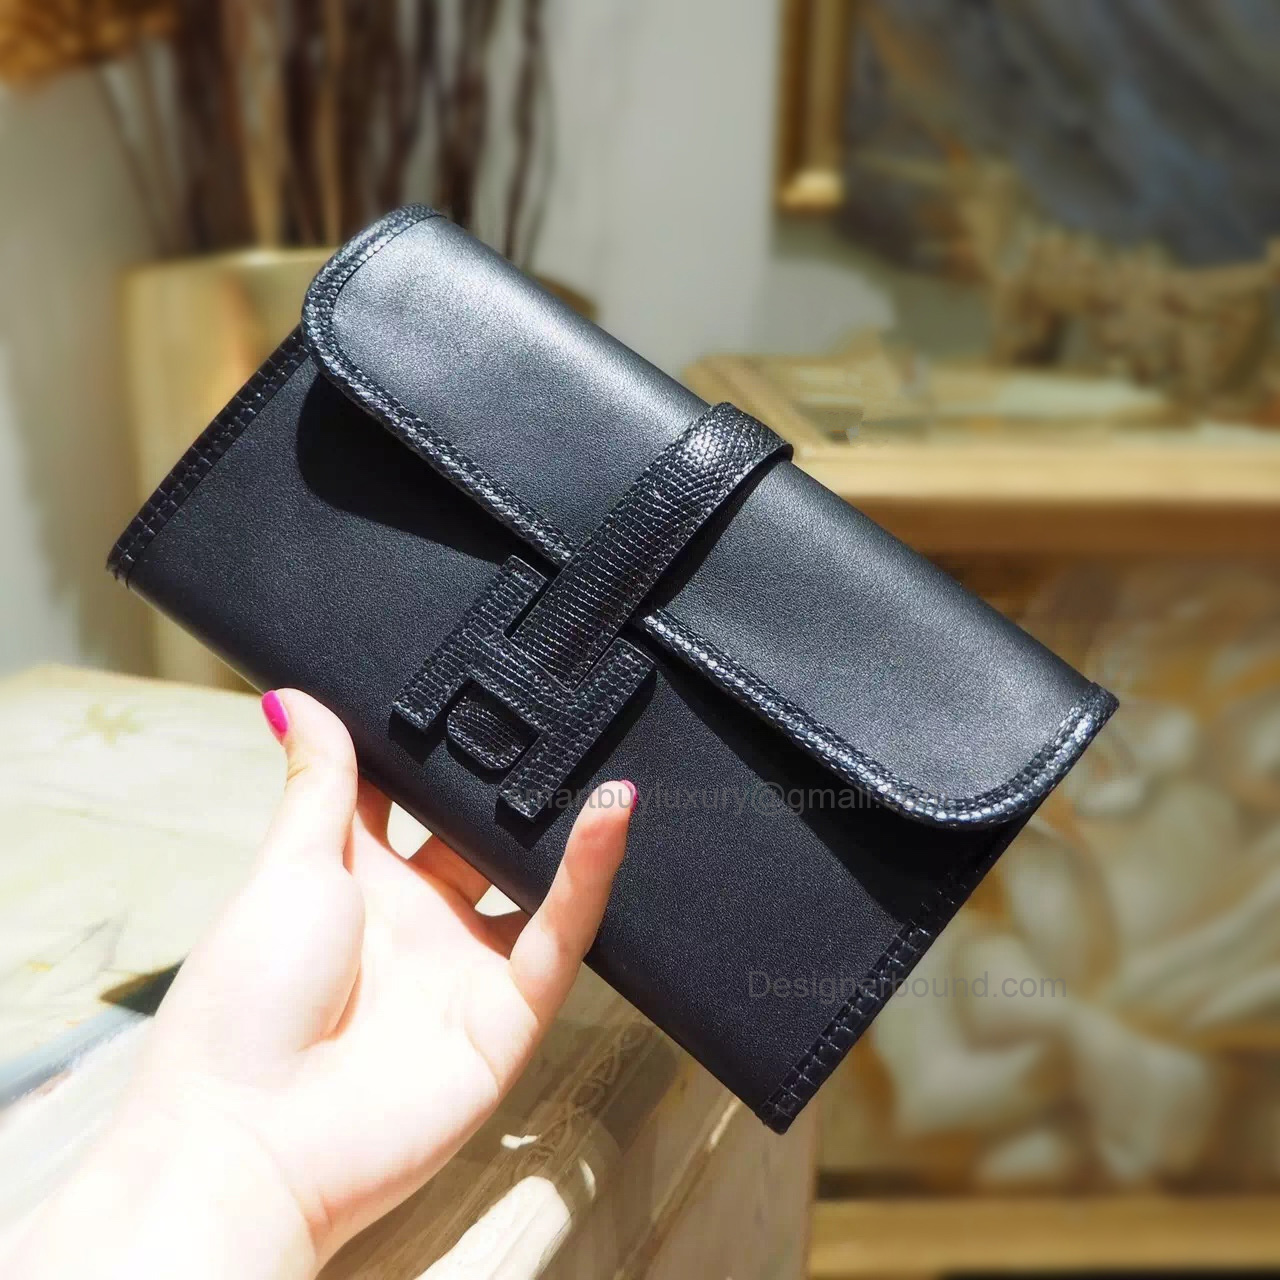 Copy Hermes Jige Duo Mini Clutch Handmade in Noir ck89 Swift and Lizard